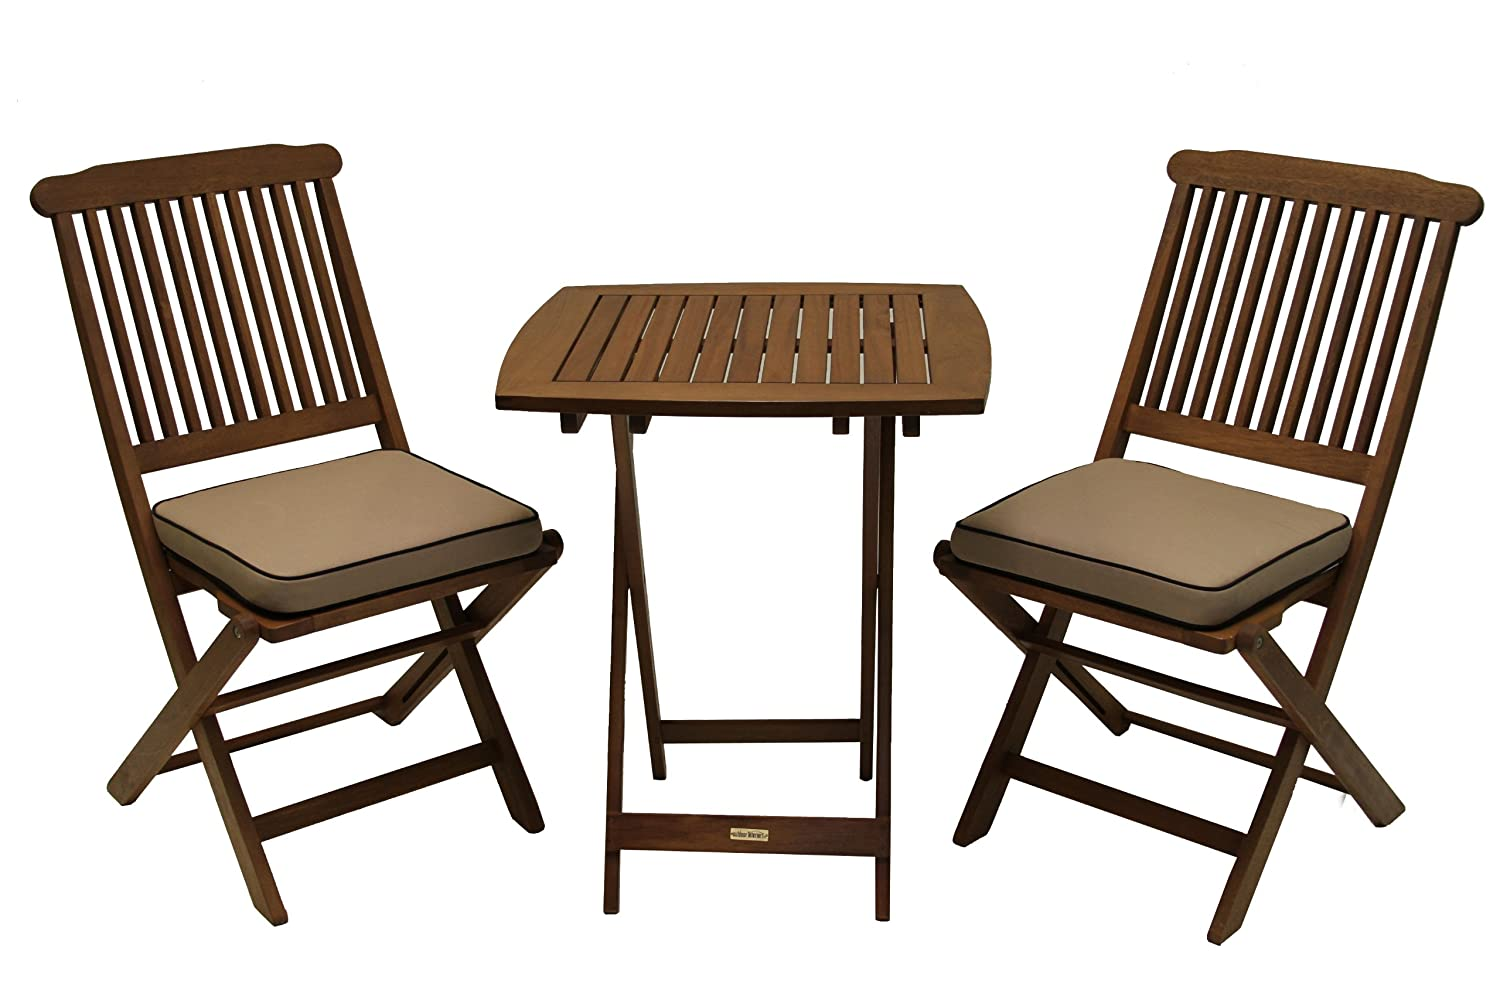 Amazon.com : 3 Piece Square Bistro Outdoor Furniture Set The bistro set we keep on the cockpit of our boat. Folds up nicely, seems solid and fits great in a small space!